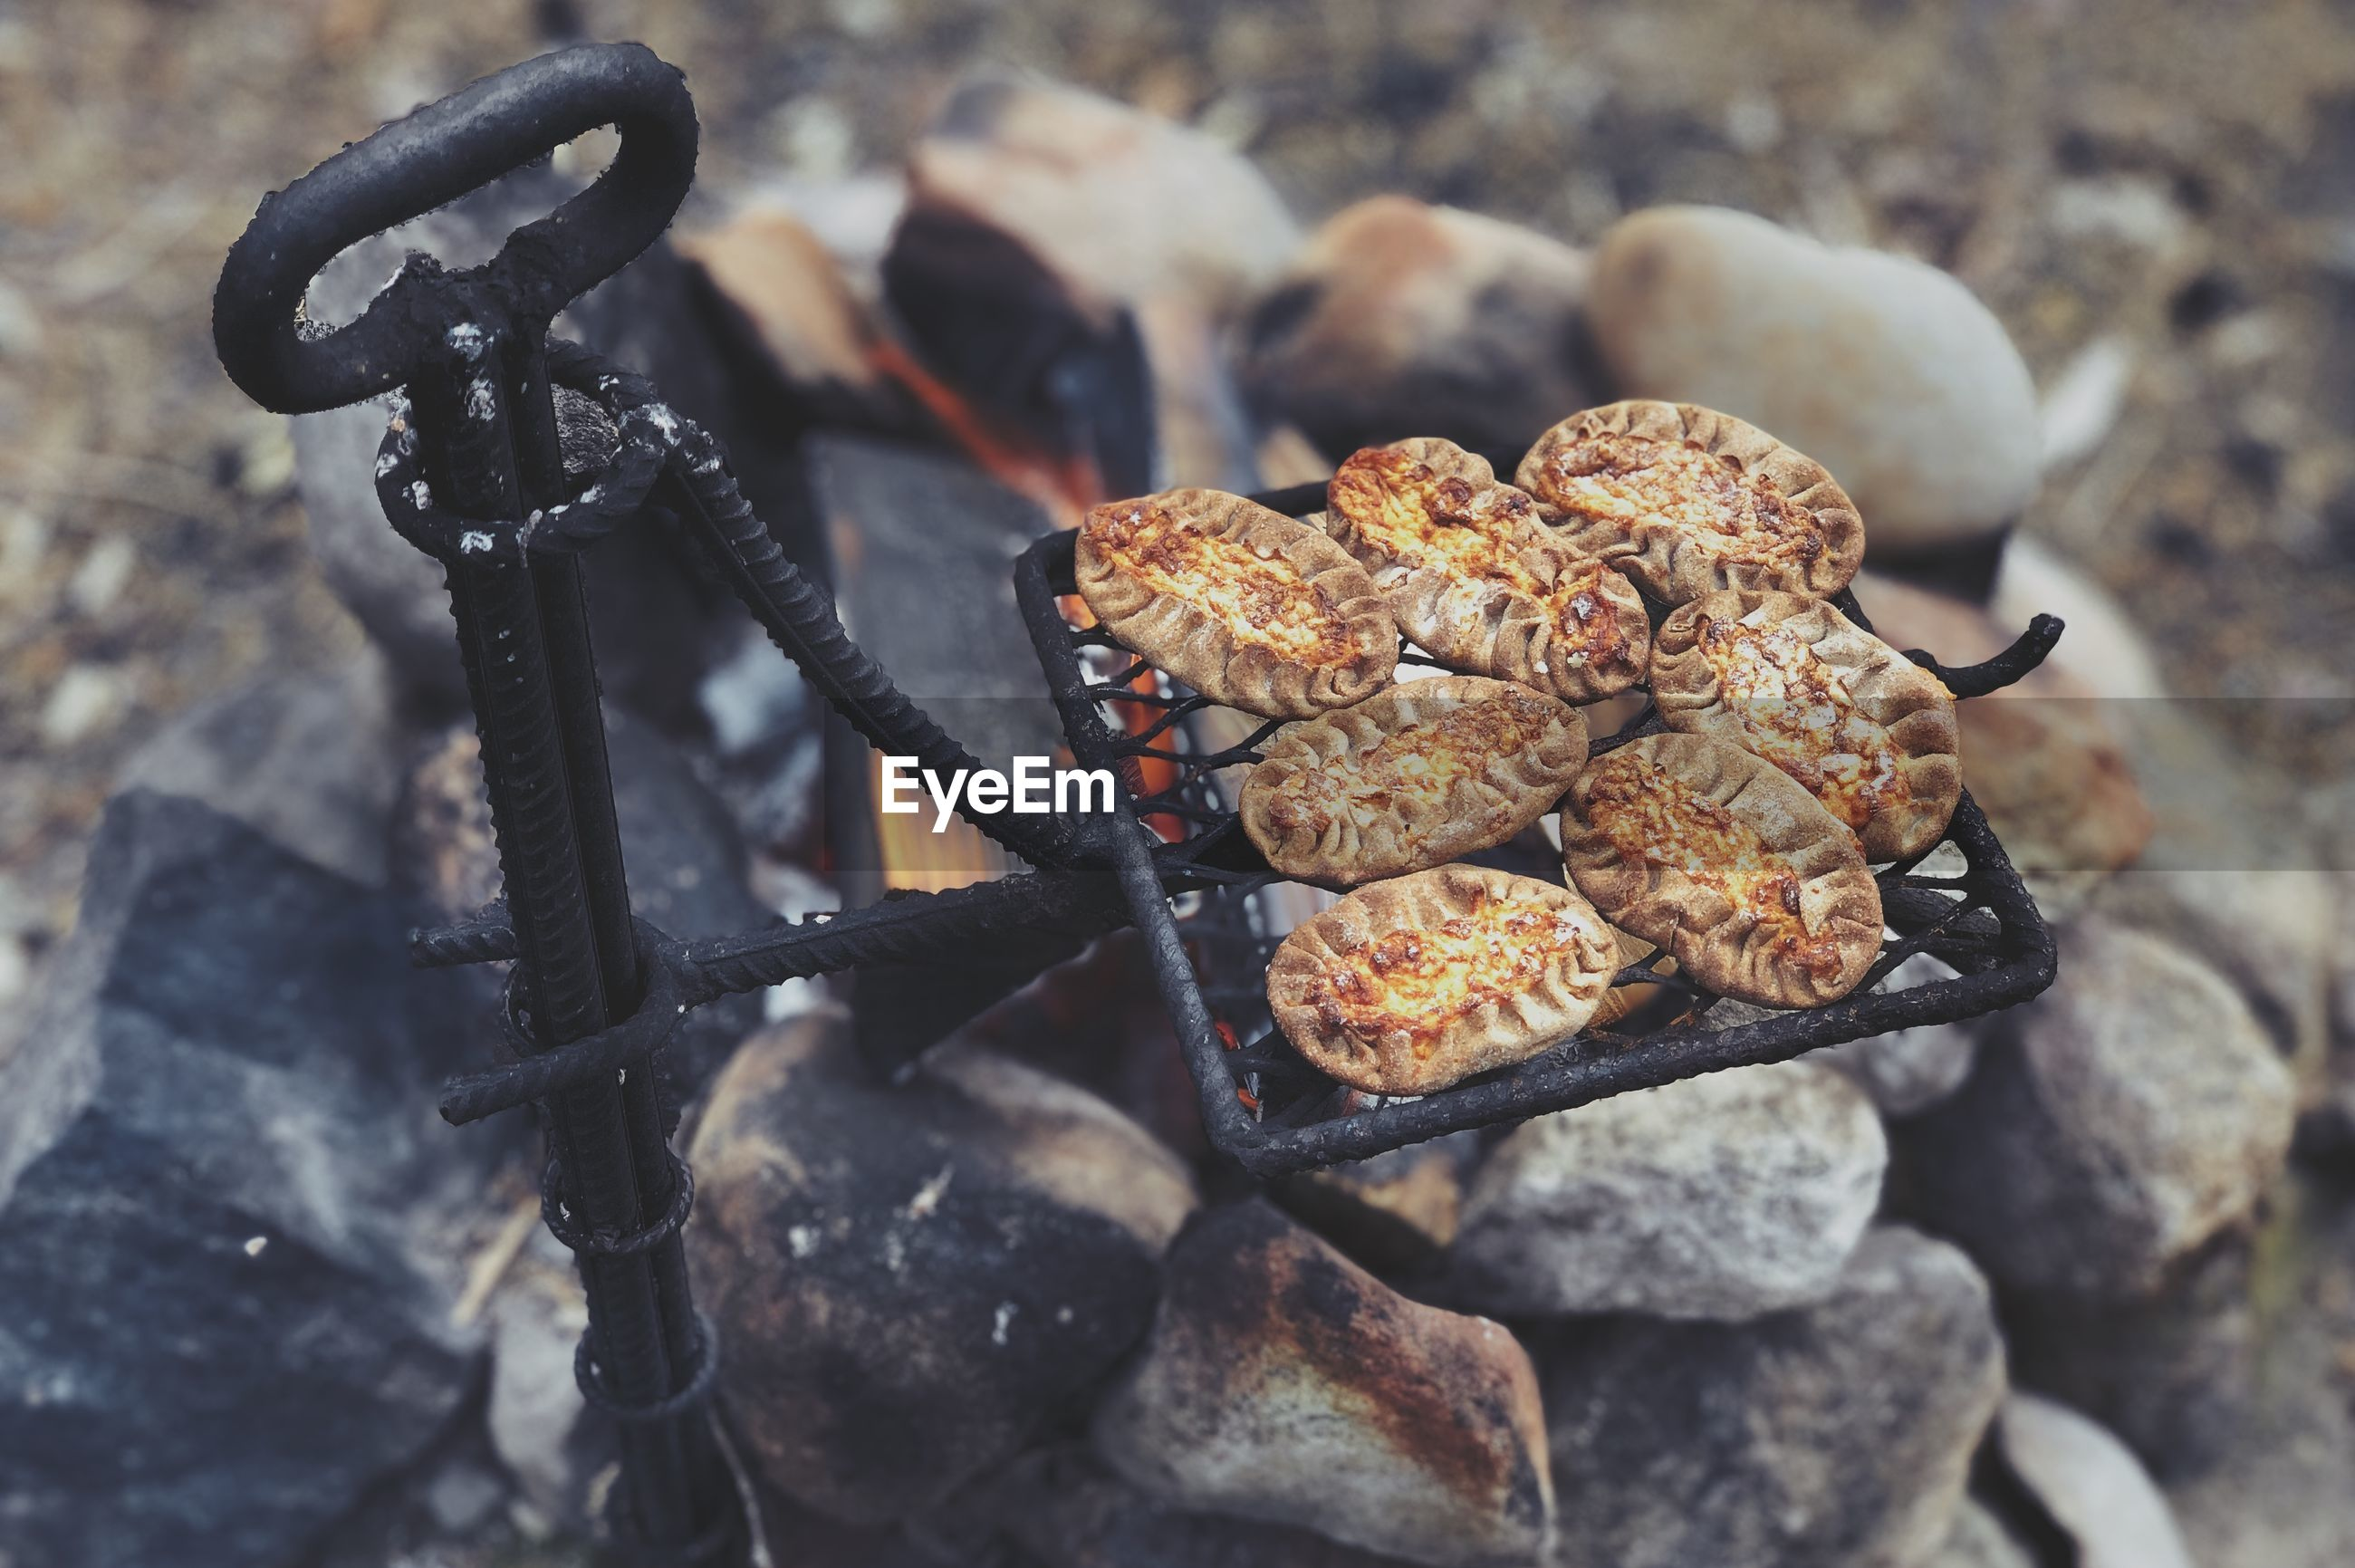 High angle view of food cooking over campfire